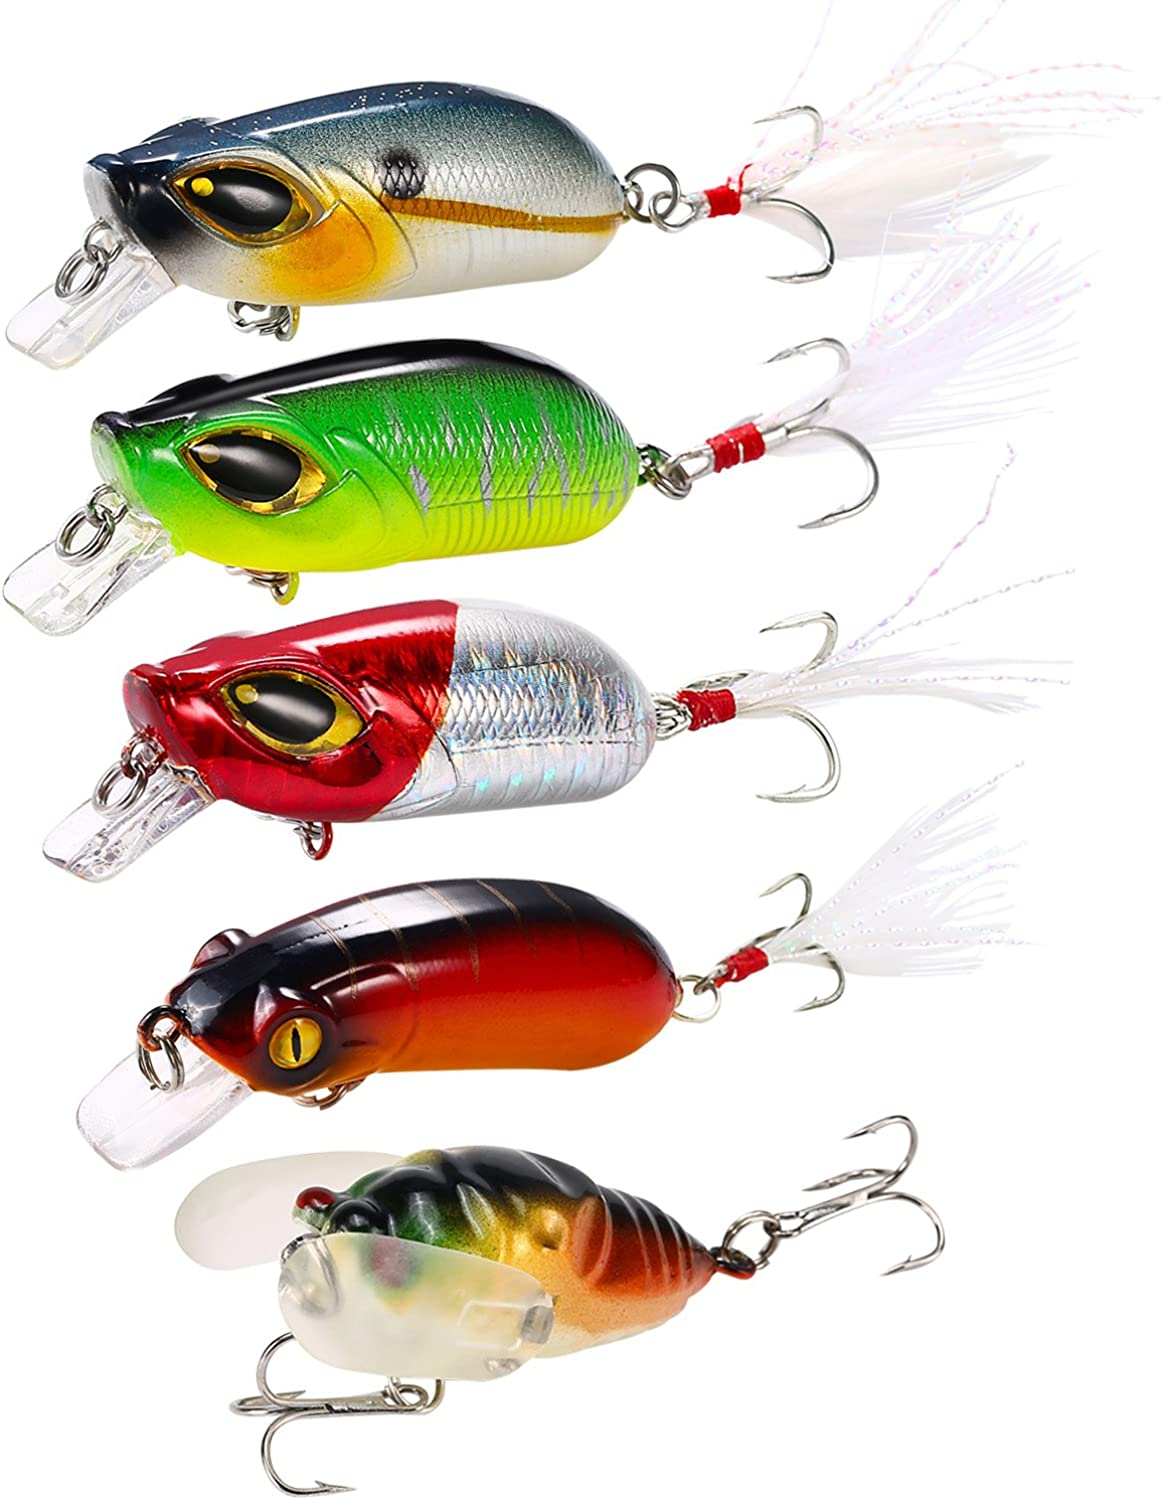 Hpory Freshwater Saltwater Salmon Trout Lures Fishing Bass